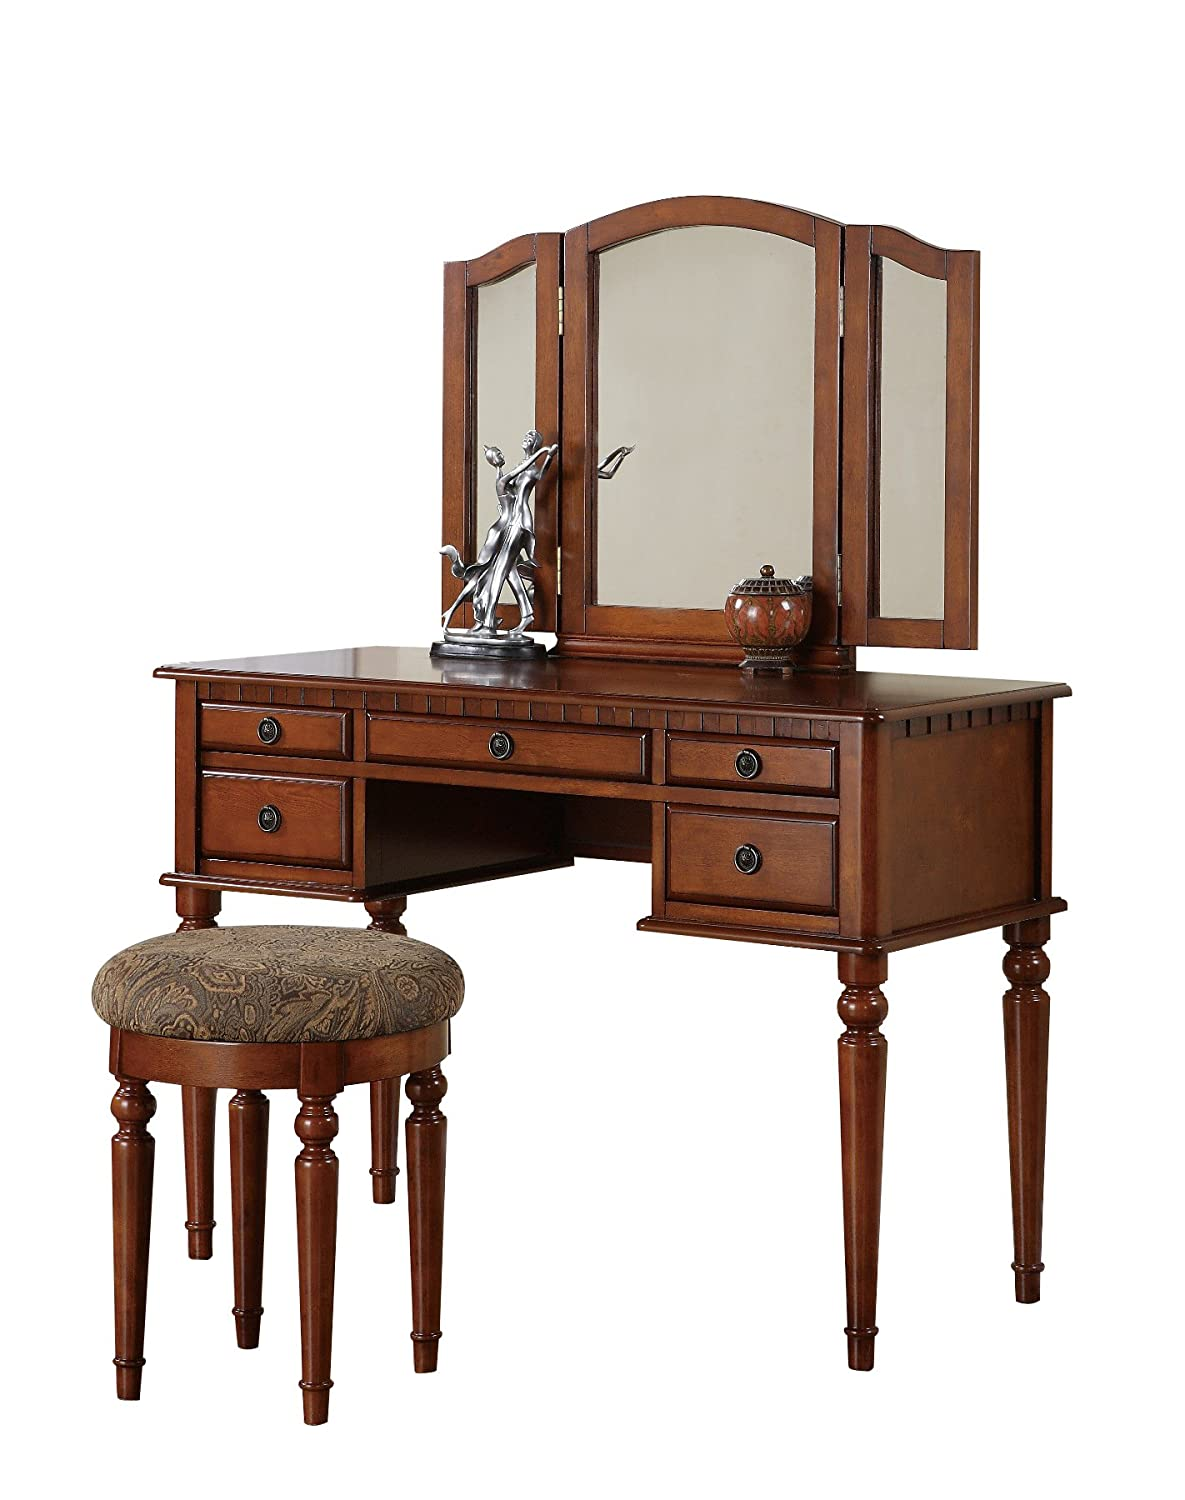 Makeup Tables And Chairs Walnut Make Up Vanity Table Sets Under 200 Olivia 39s Place